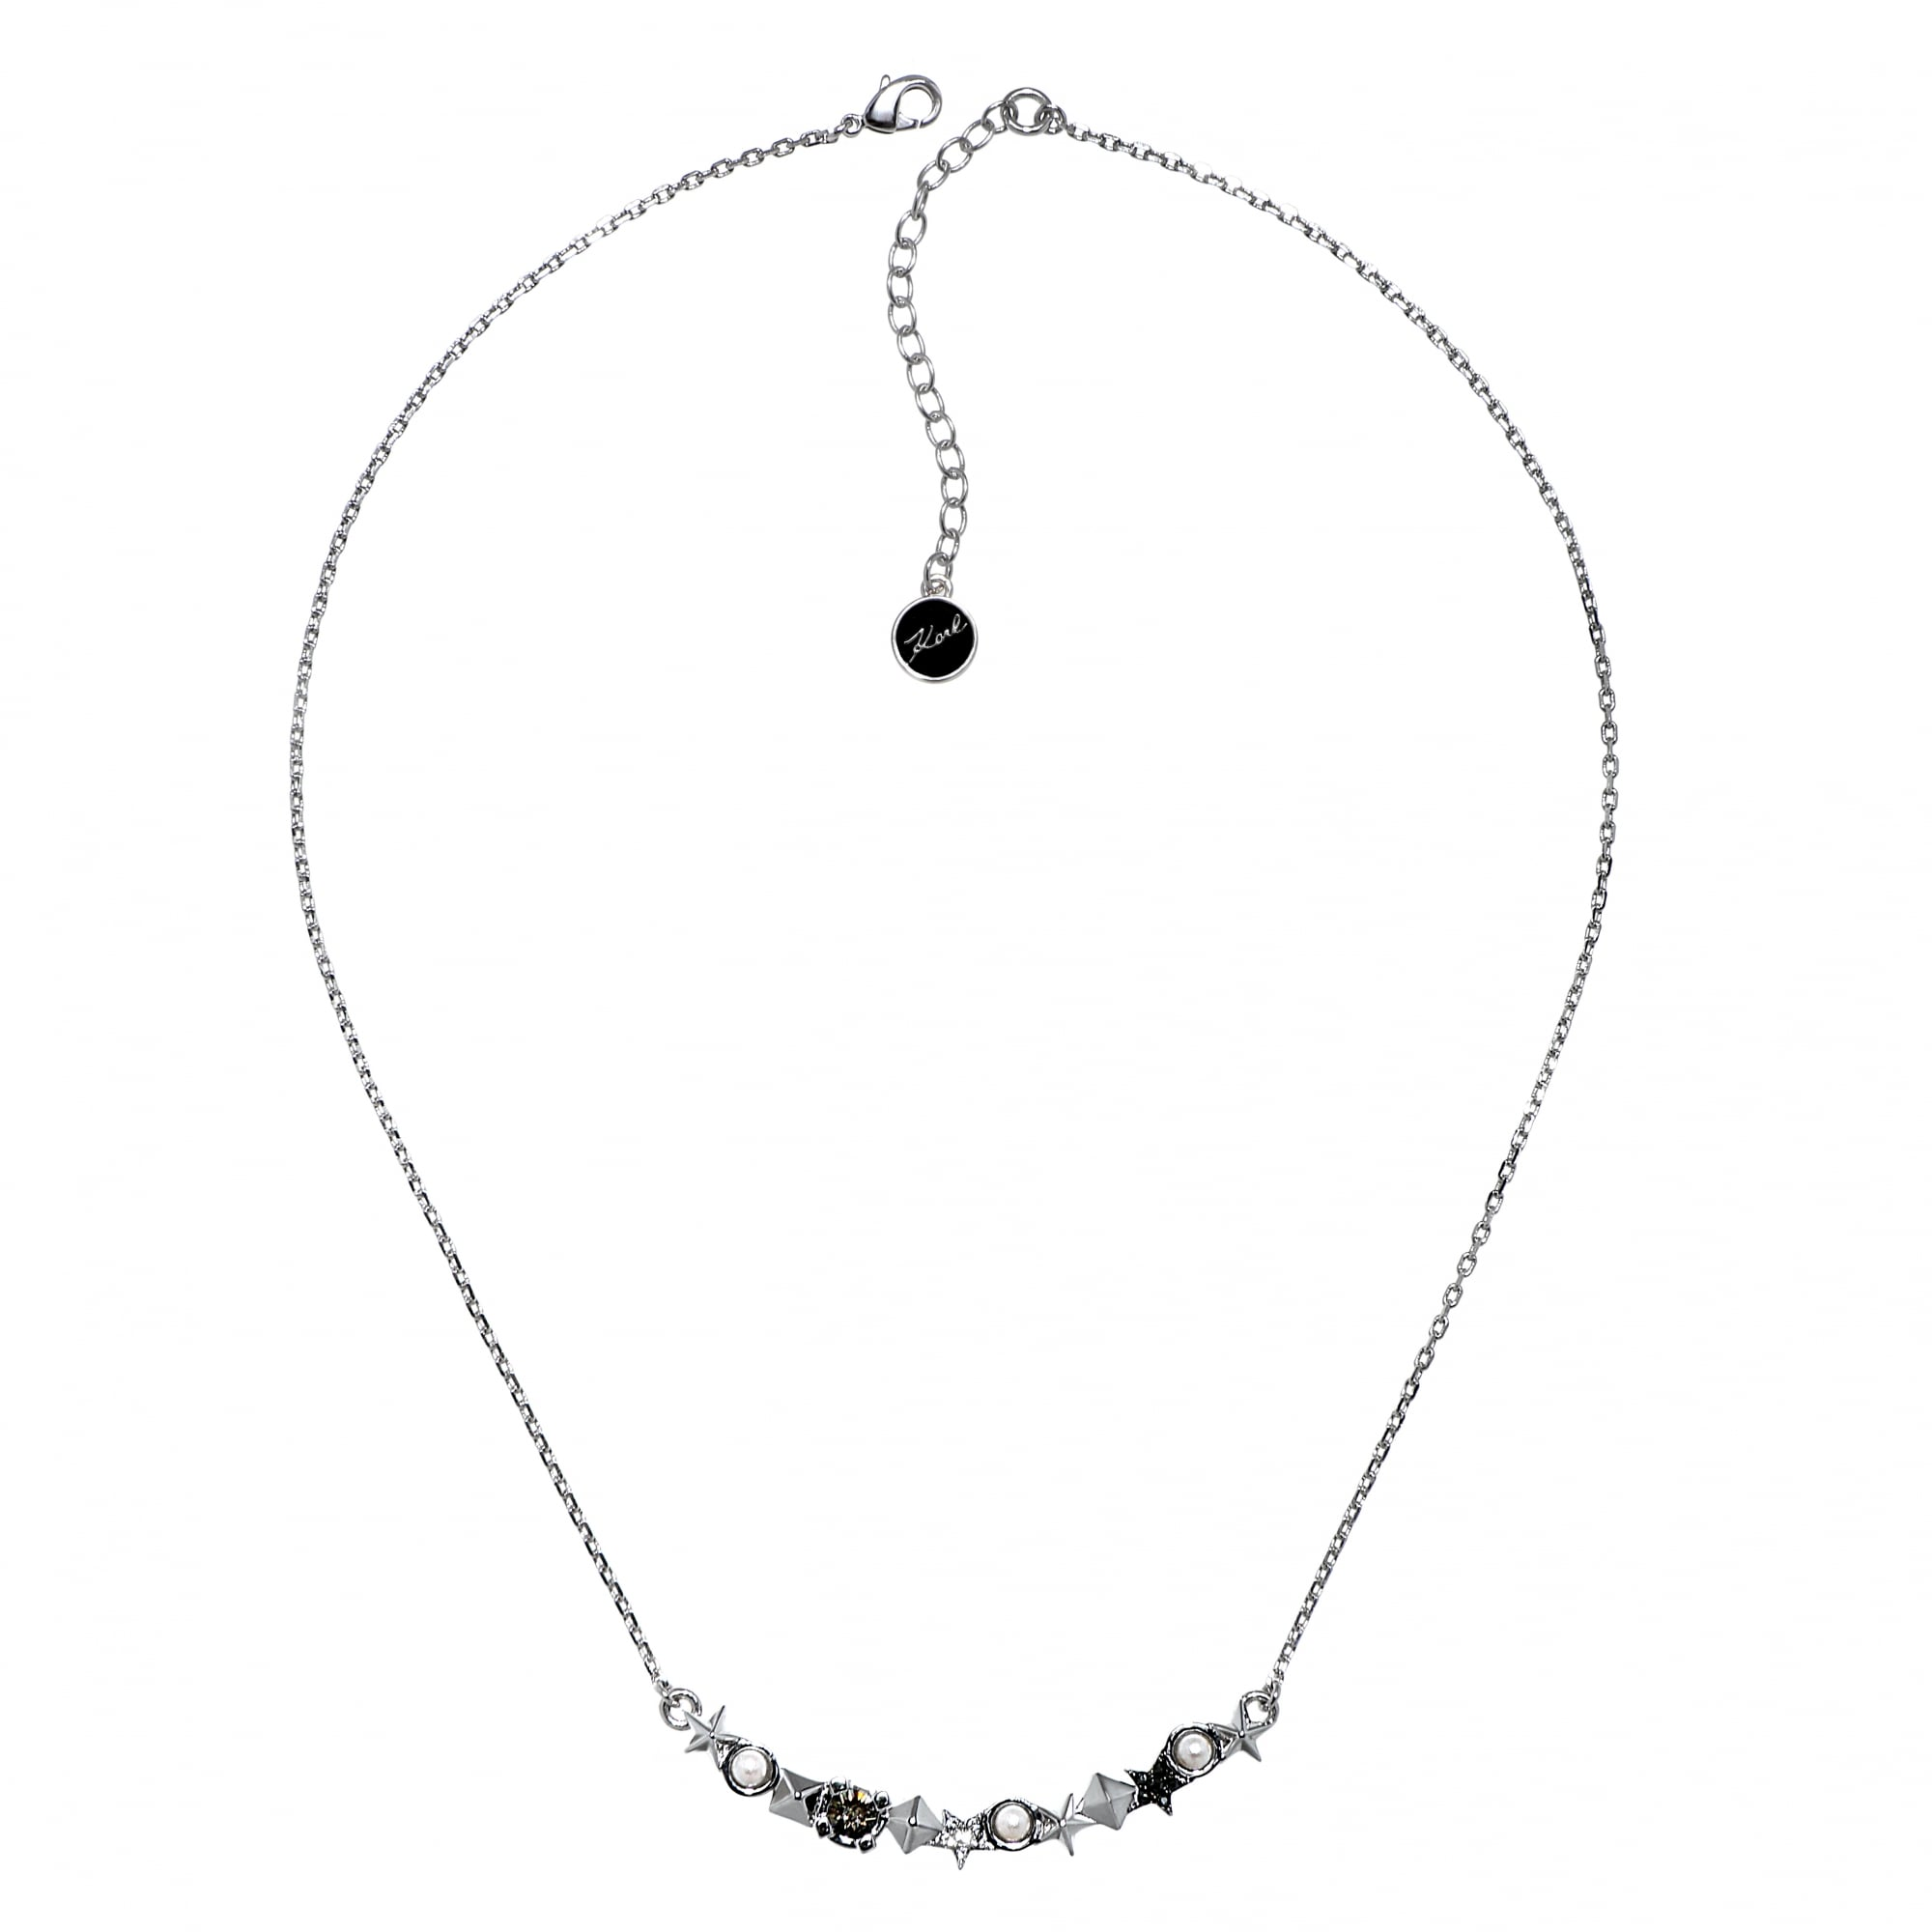 Karl Lagerfeld Silver Star And Stud Bar Necklace Created With Swarovski Crystals